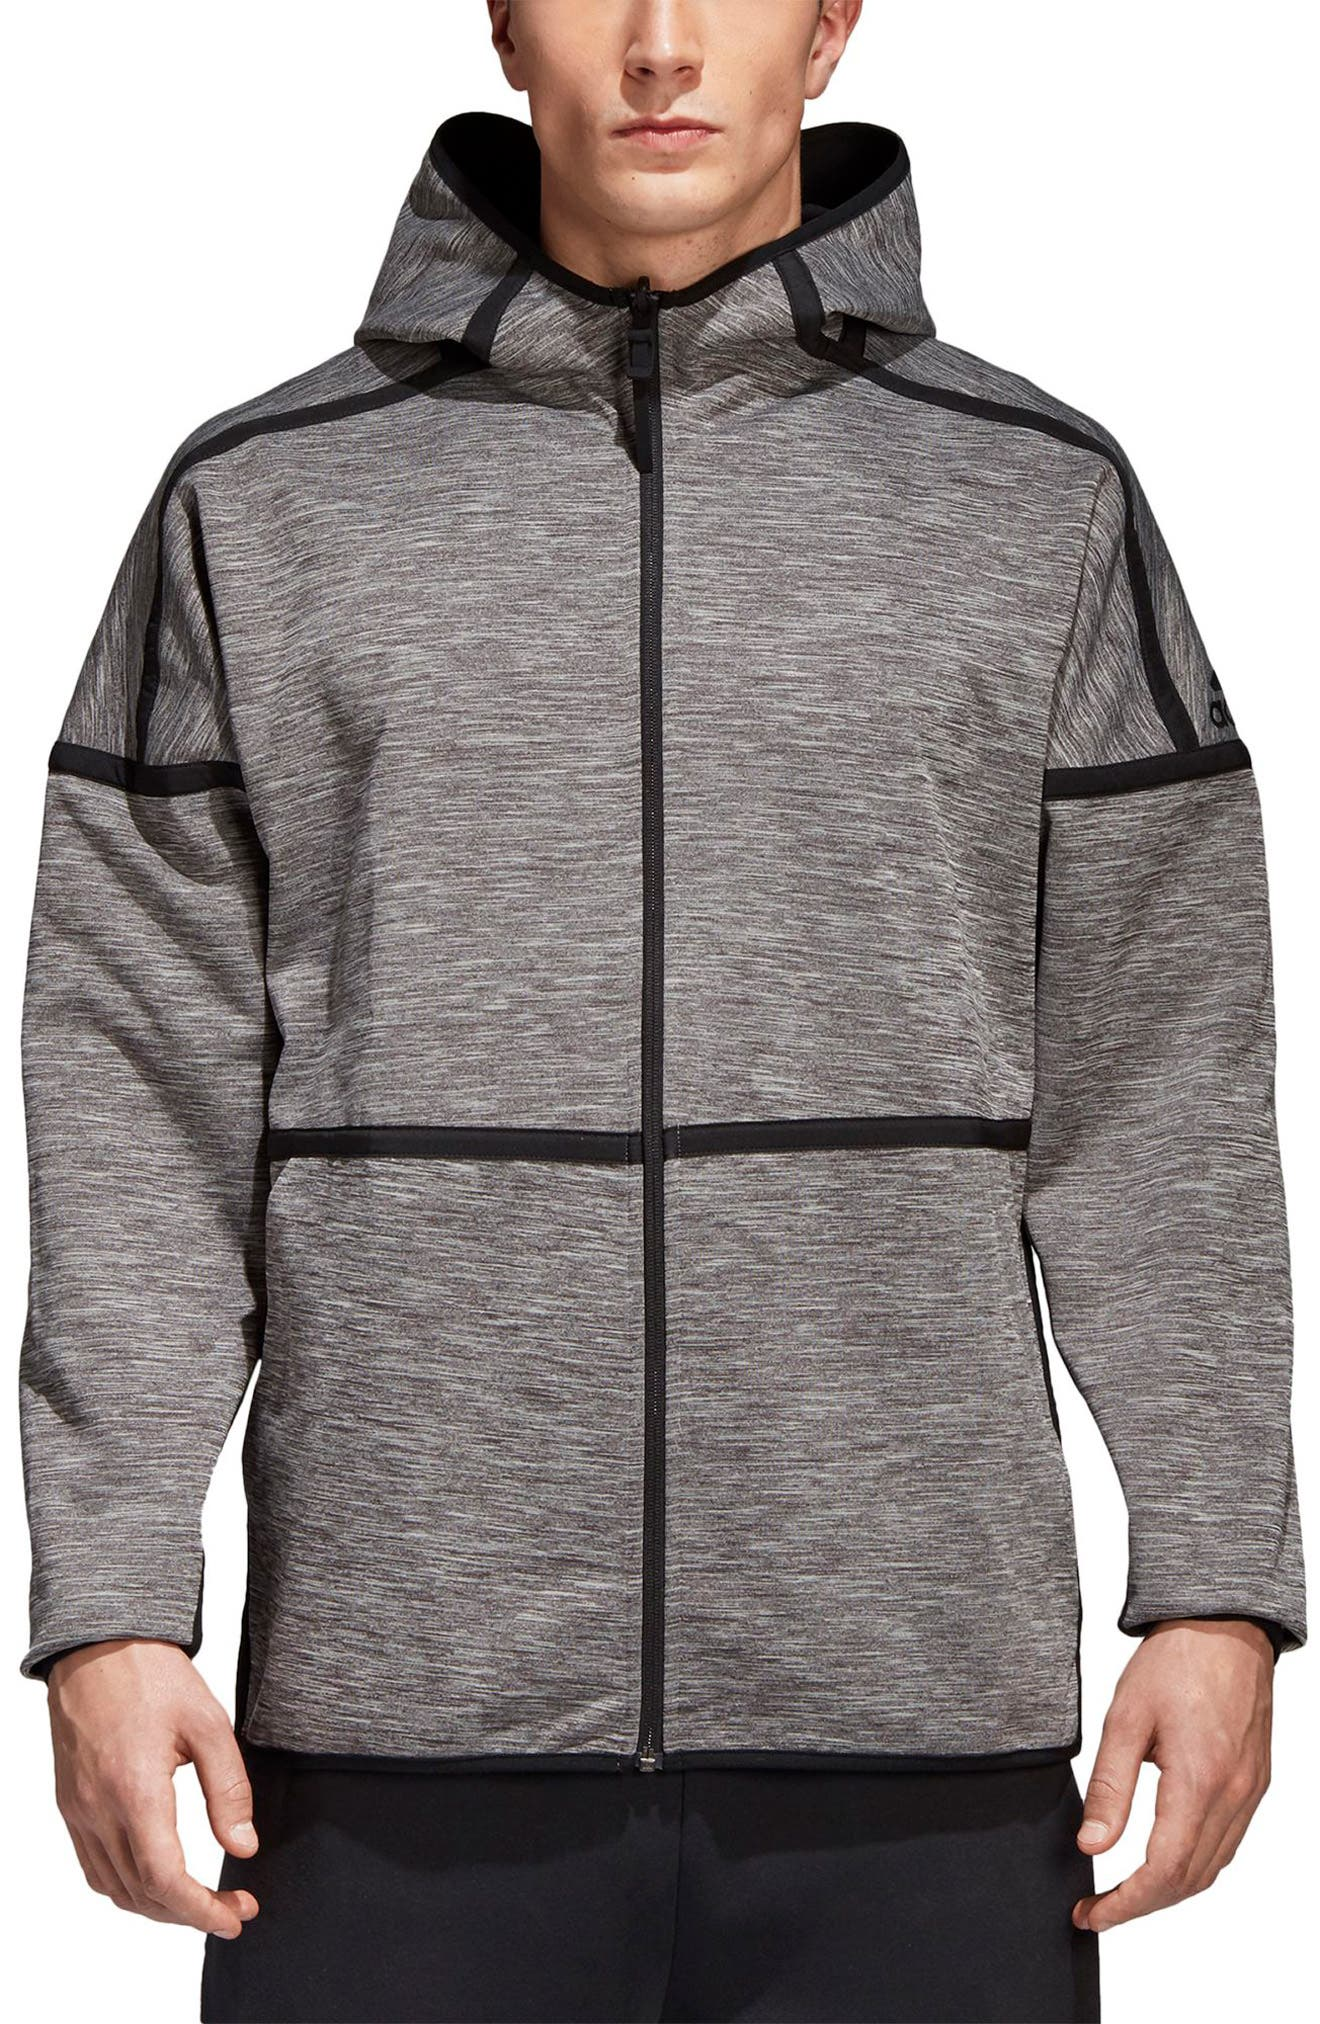 ZNE Regular Fit Reversible Hooded Jacket,                         Main,                         color, Black / Storm Heather/ Mgh